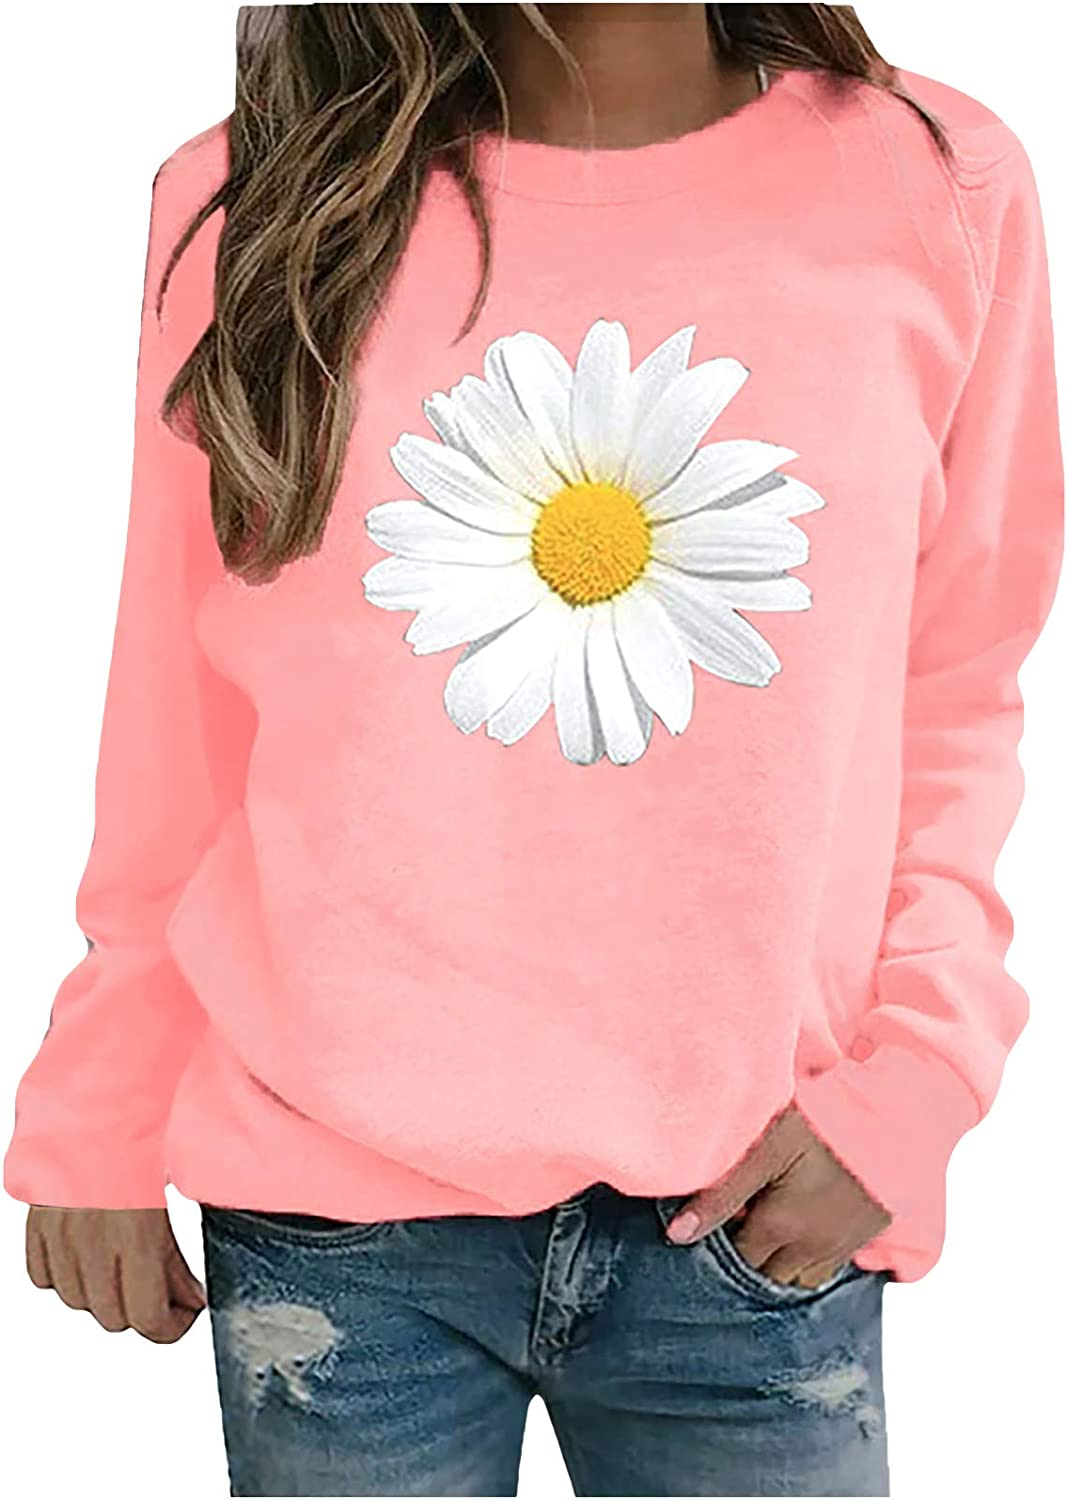 AODONG Sweater for Women, Fashion Daisy Print Long Sleeve Sweatshirts Casual Floral Pullover Blouse